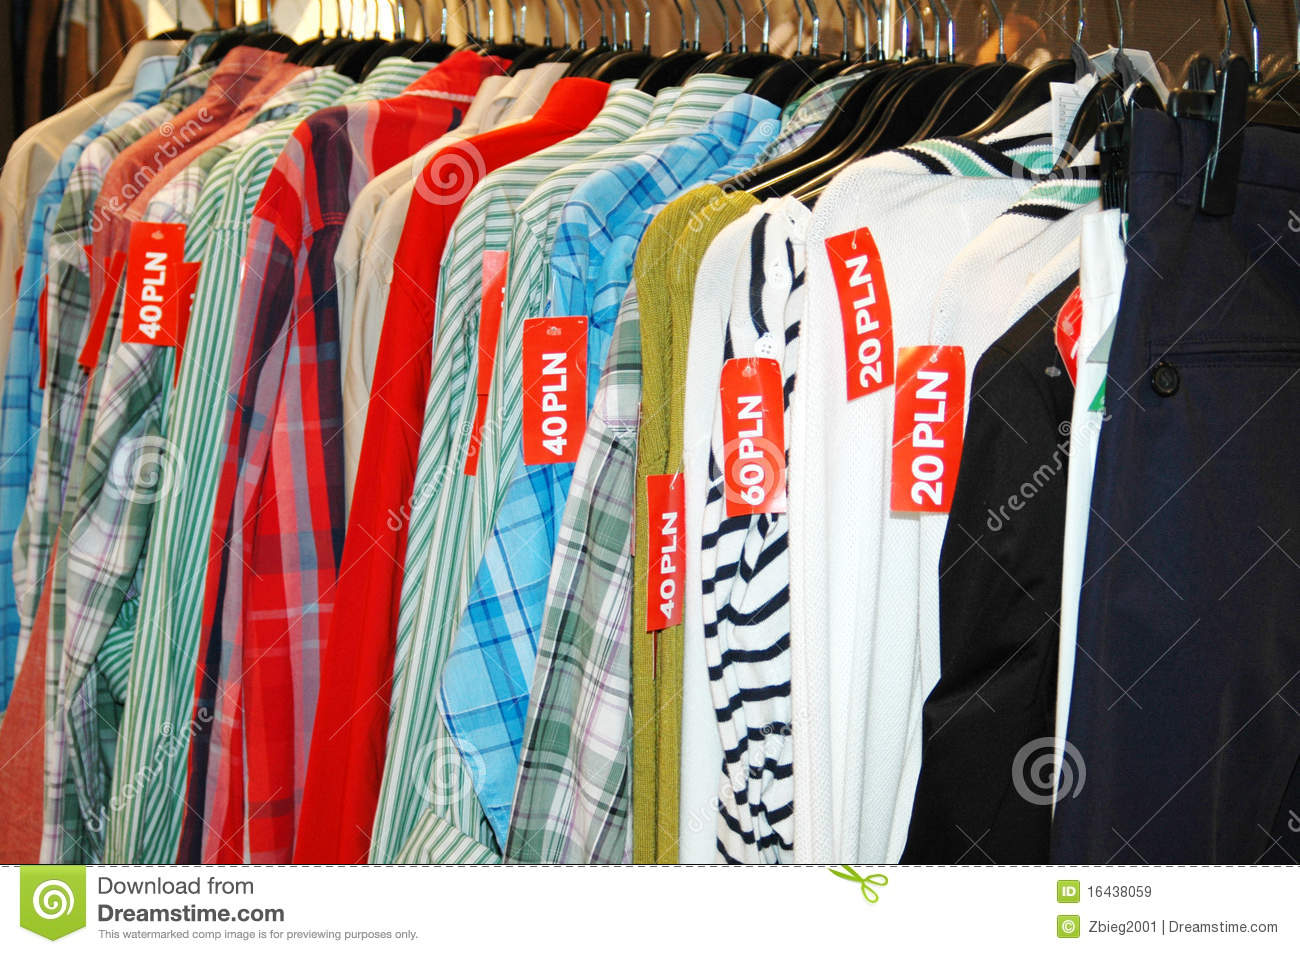 Royalty Free Stock Images: Clothing store sale